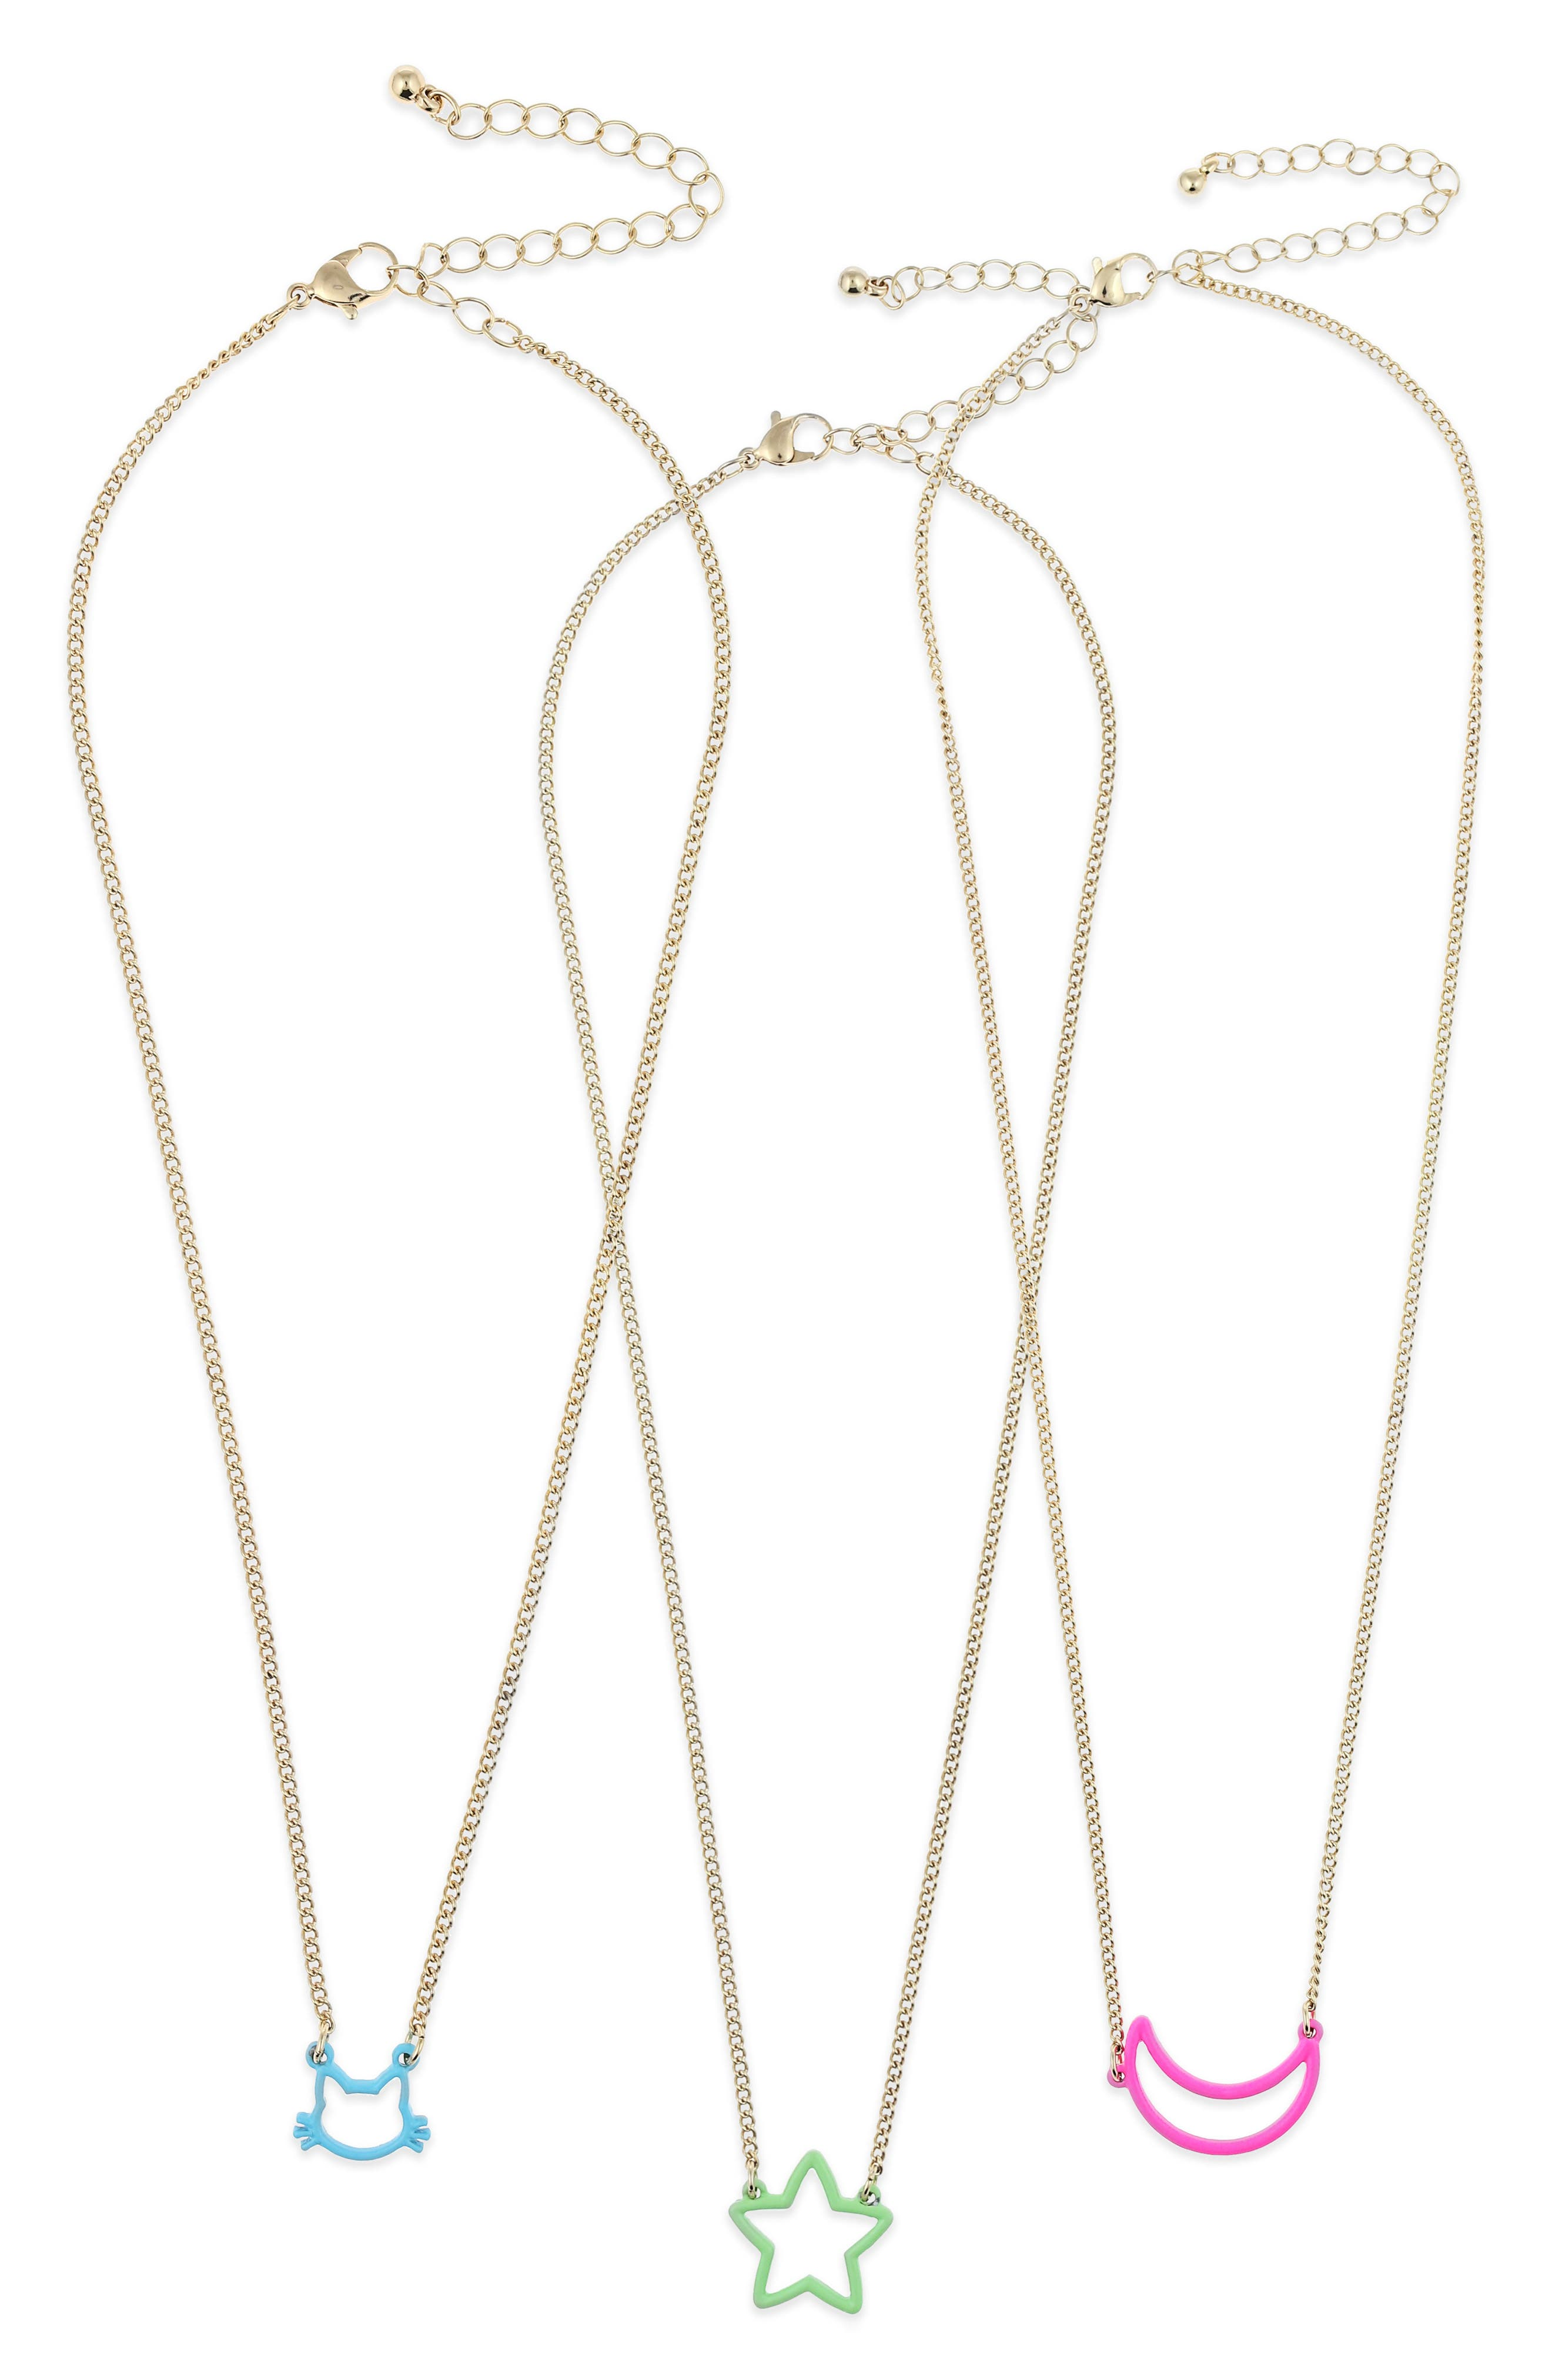 3-Pack BFF Necklace Set,                             Main thumbnail 1, color,                             711